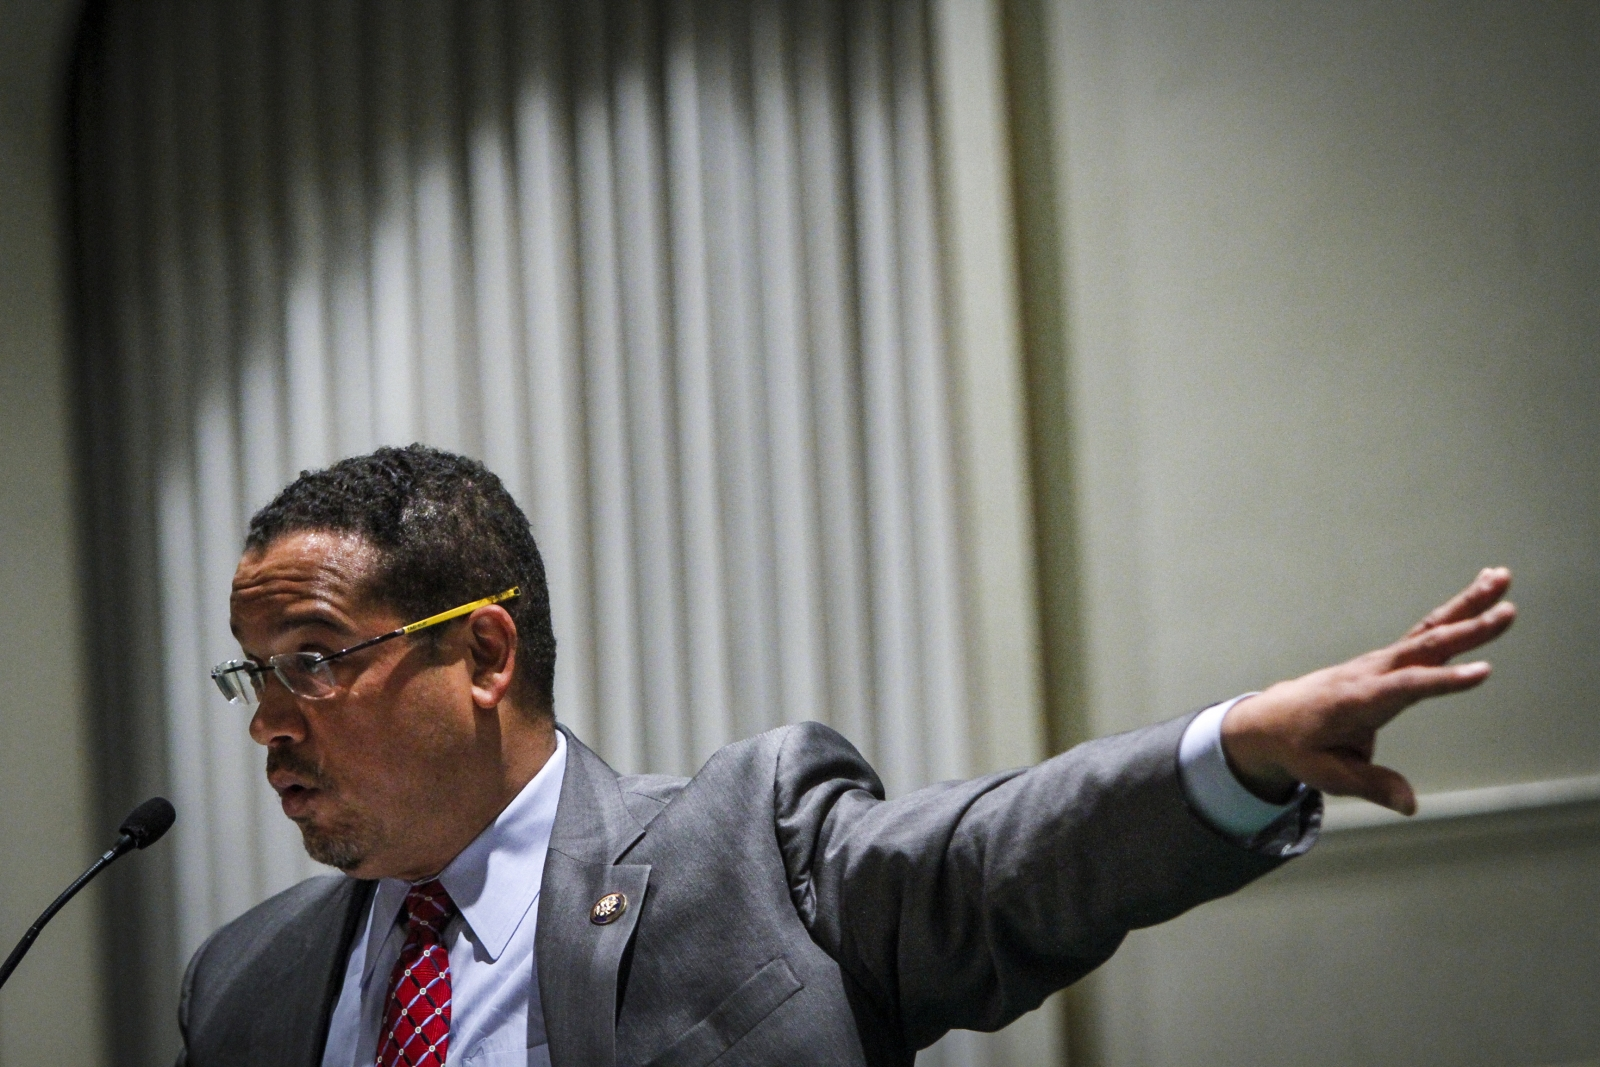 DNC chair candidate Keith Ellison